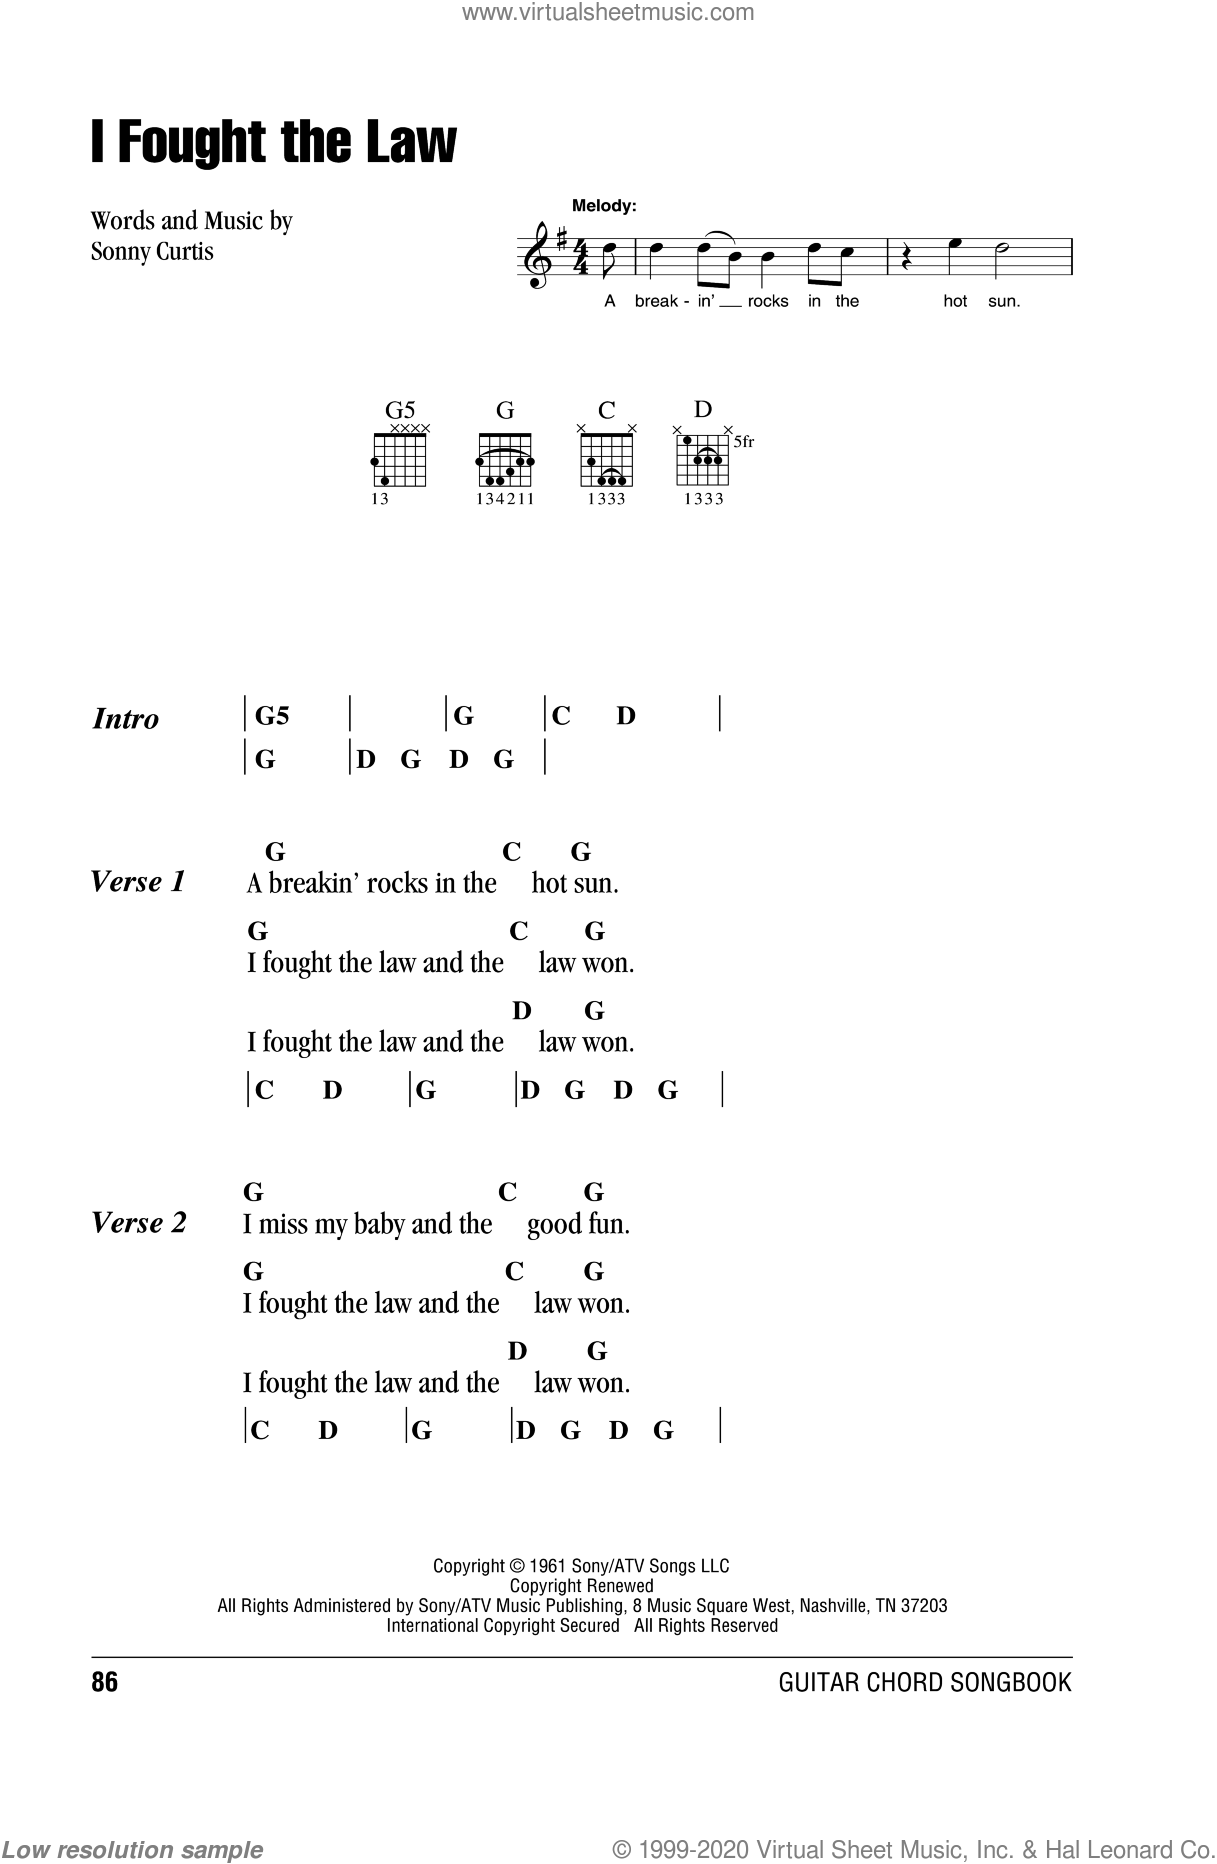 I Fought The Law sheet music for guitar (chords) by The Clash, Bobby Fuller Four and Sonny Curtis, intermediate skill level